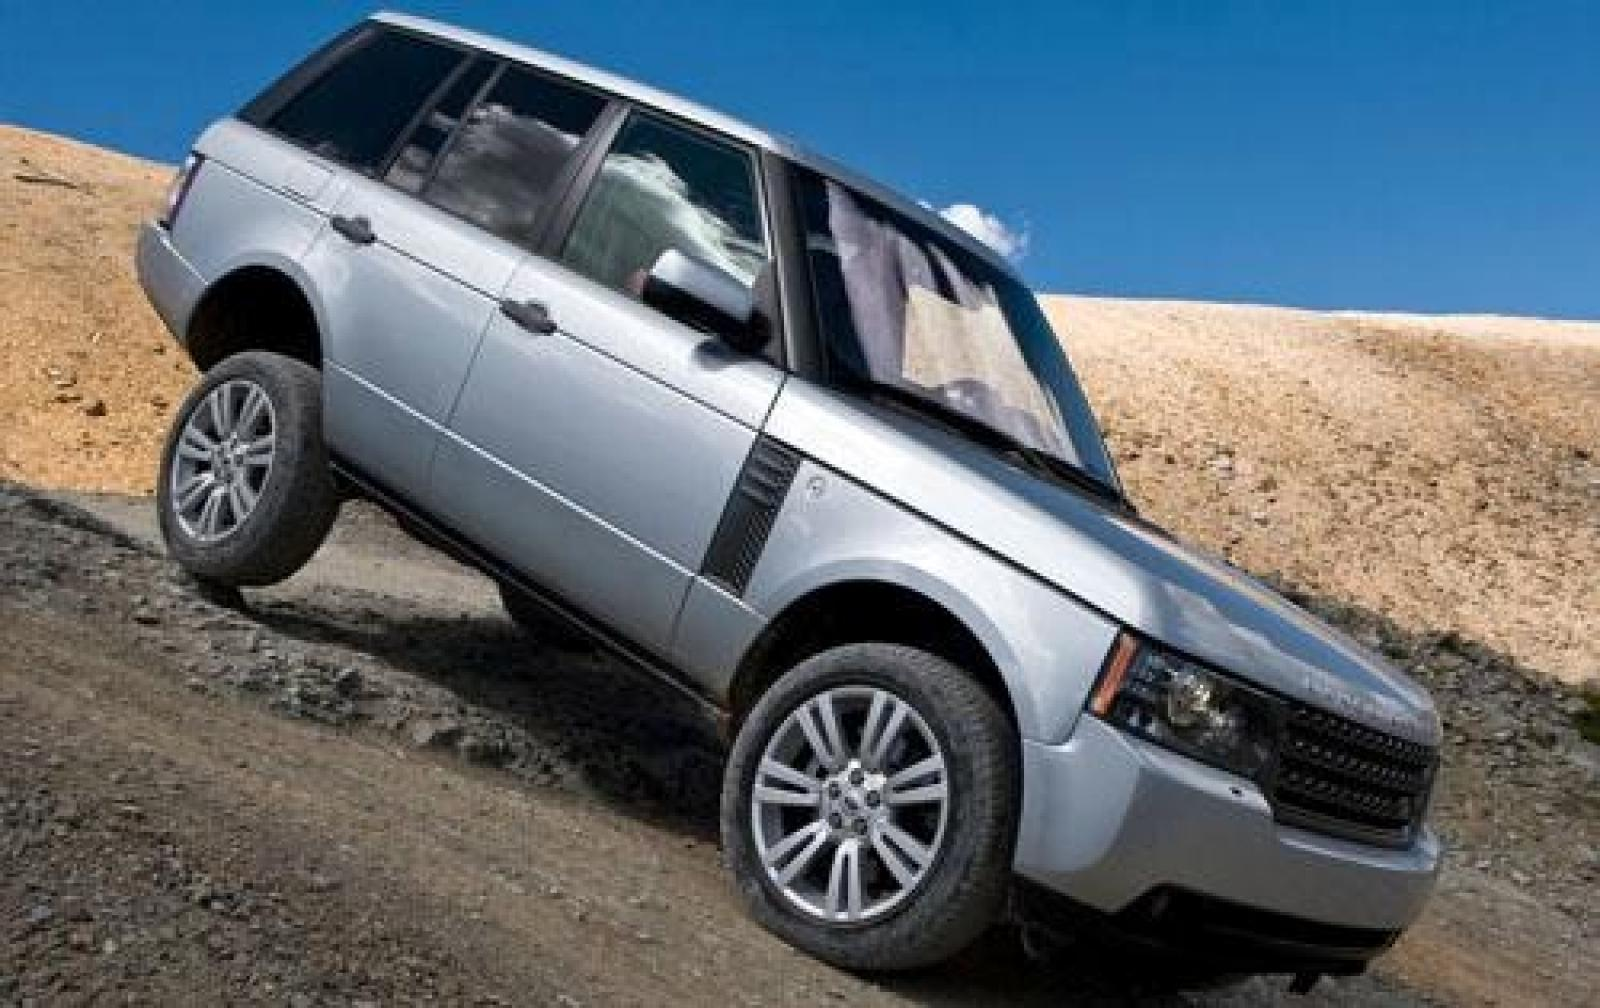 2011 land rover range rover information and photos 2011 Land Rover Range Rover Key Location 2011 landrover range rover 4dr suv hse fq oem 1 500